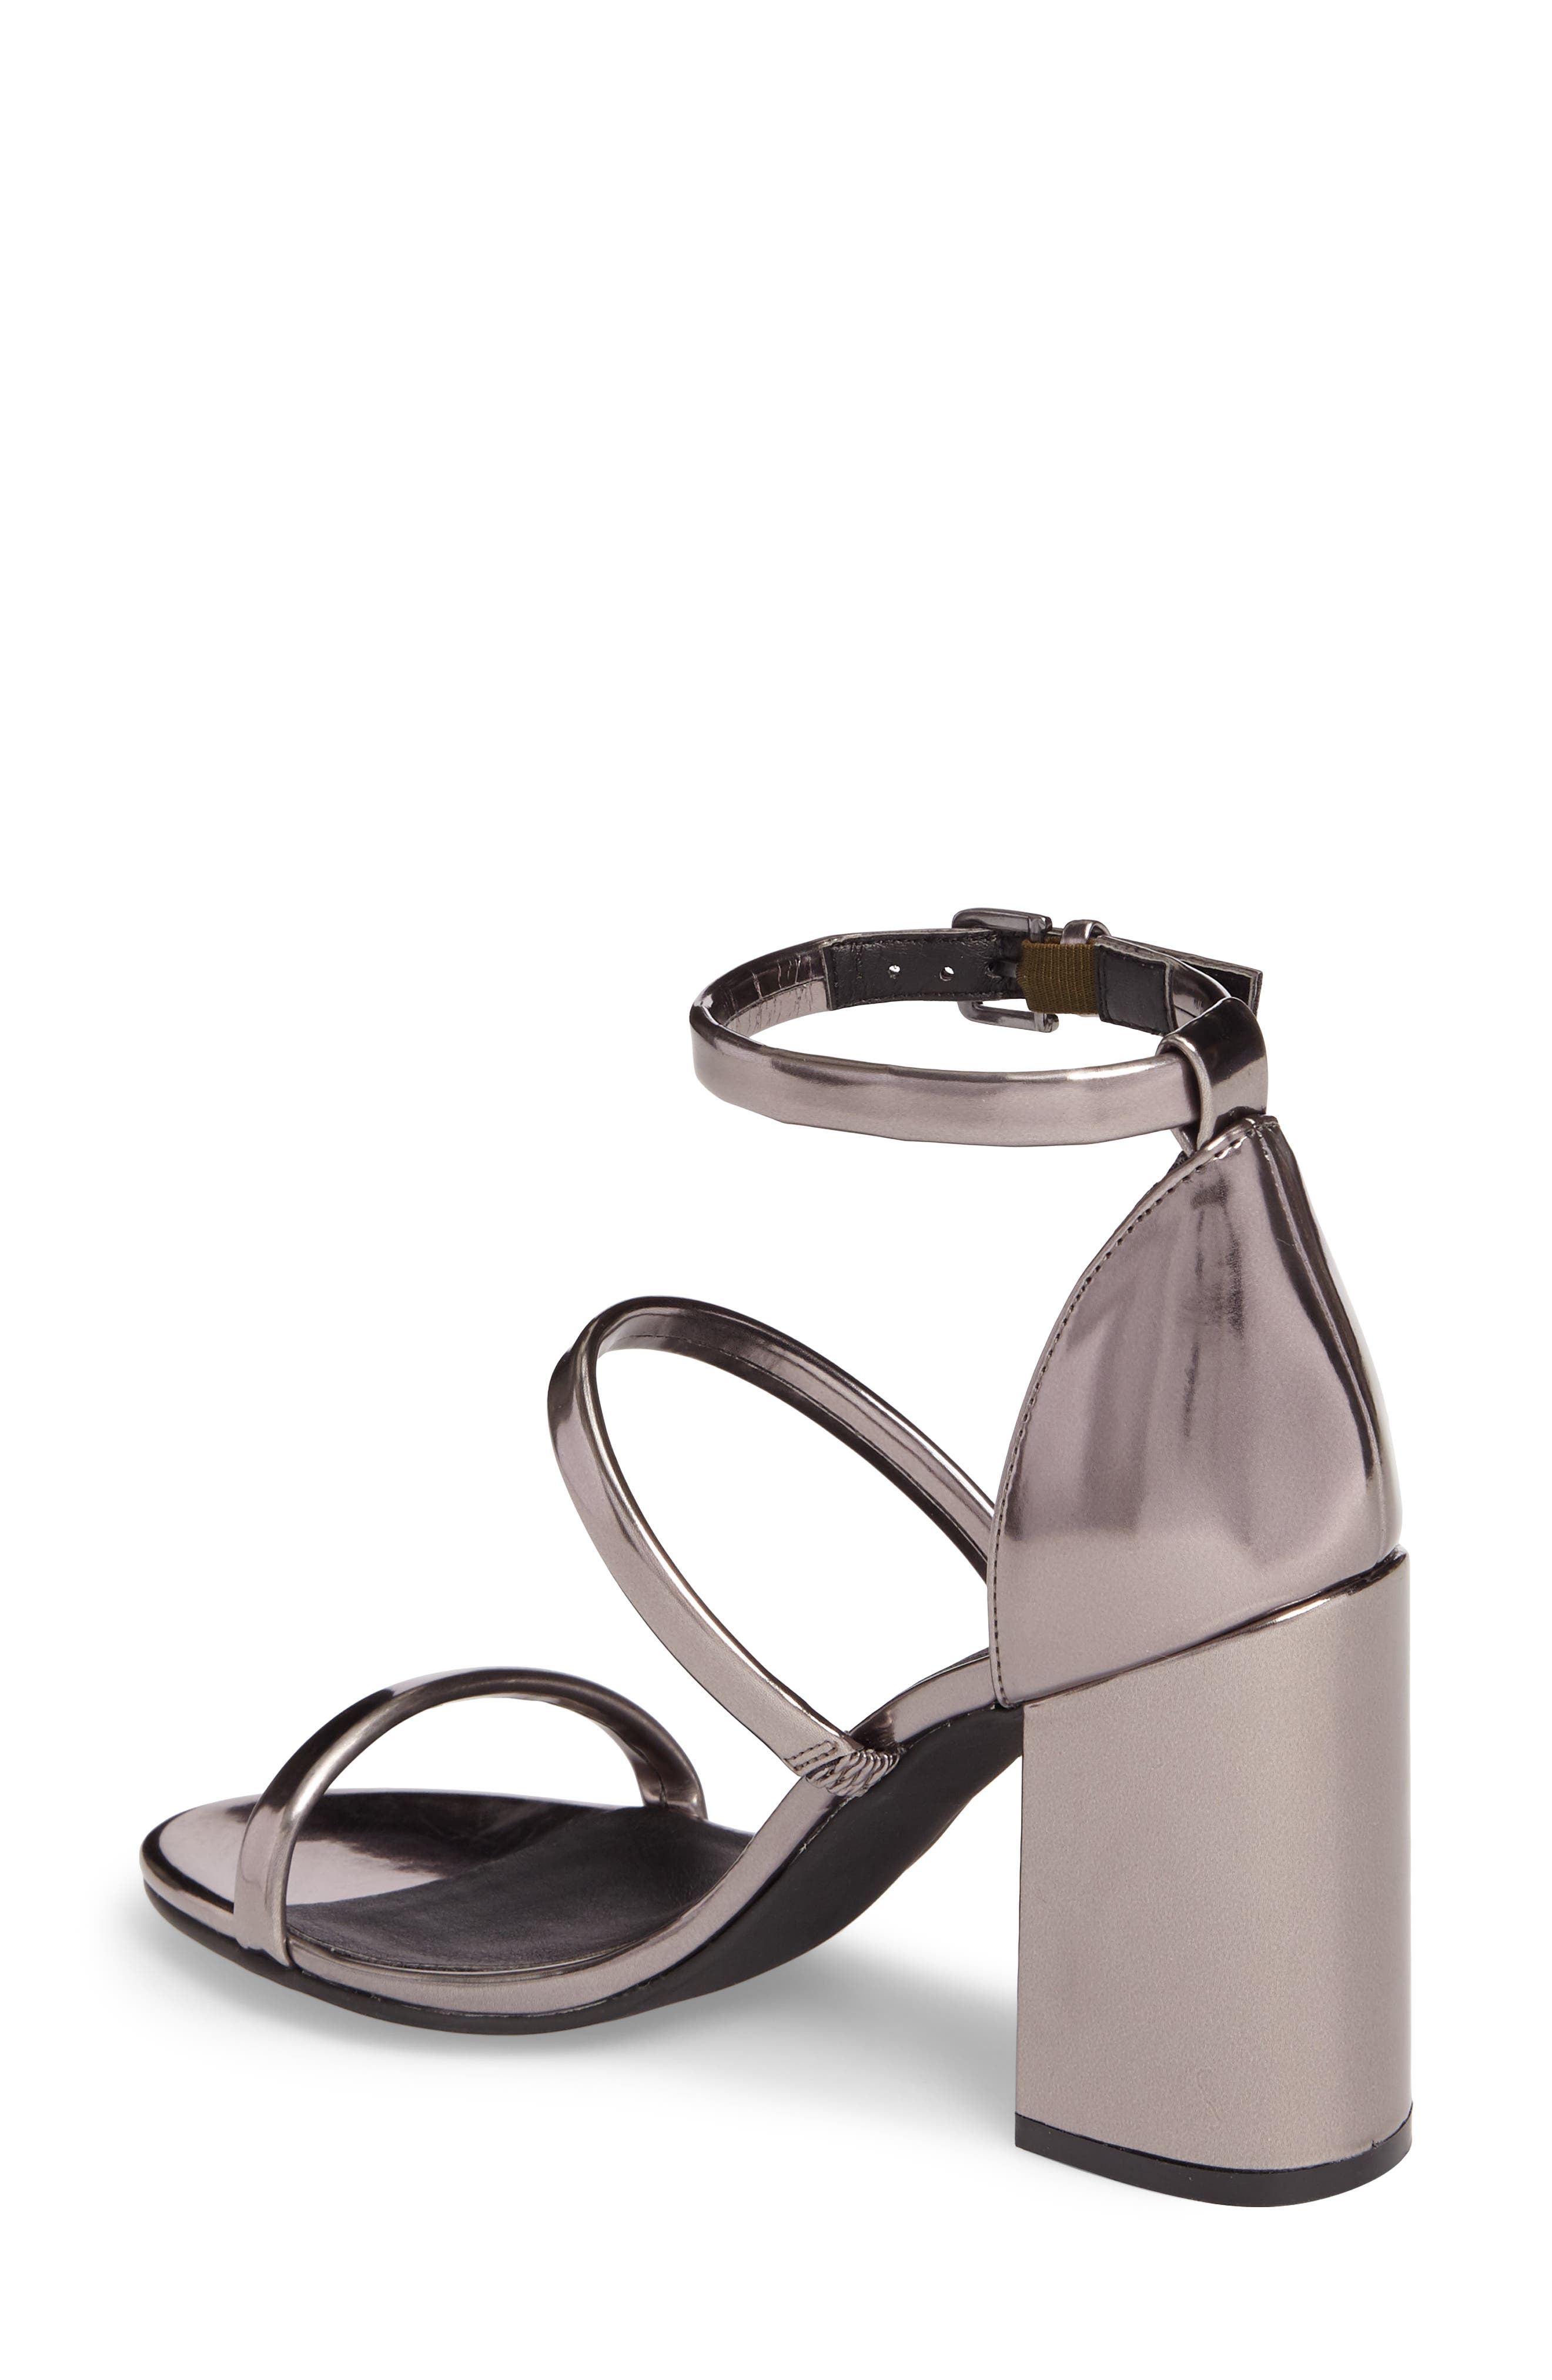 Carly Strappy Sandal,                             Alternate thumbnail 2, color,                             046